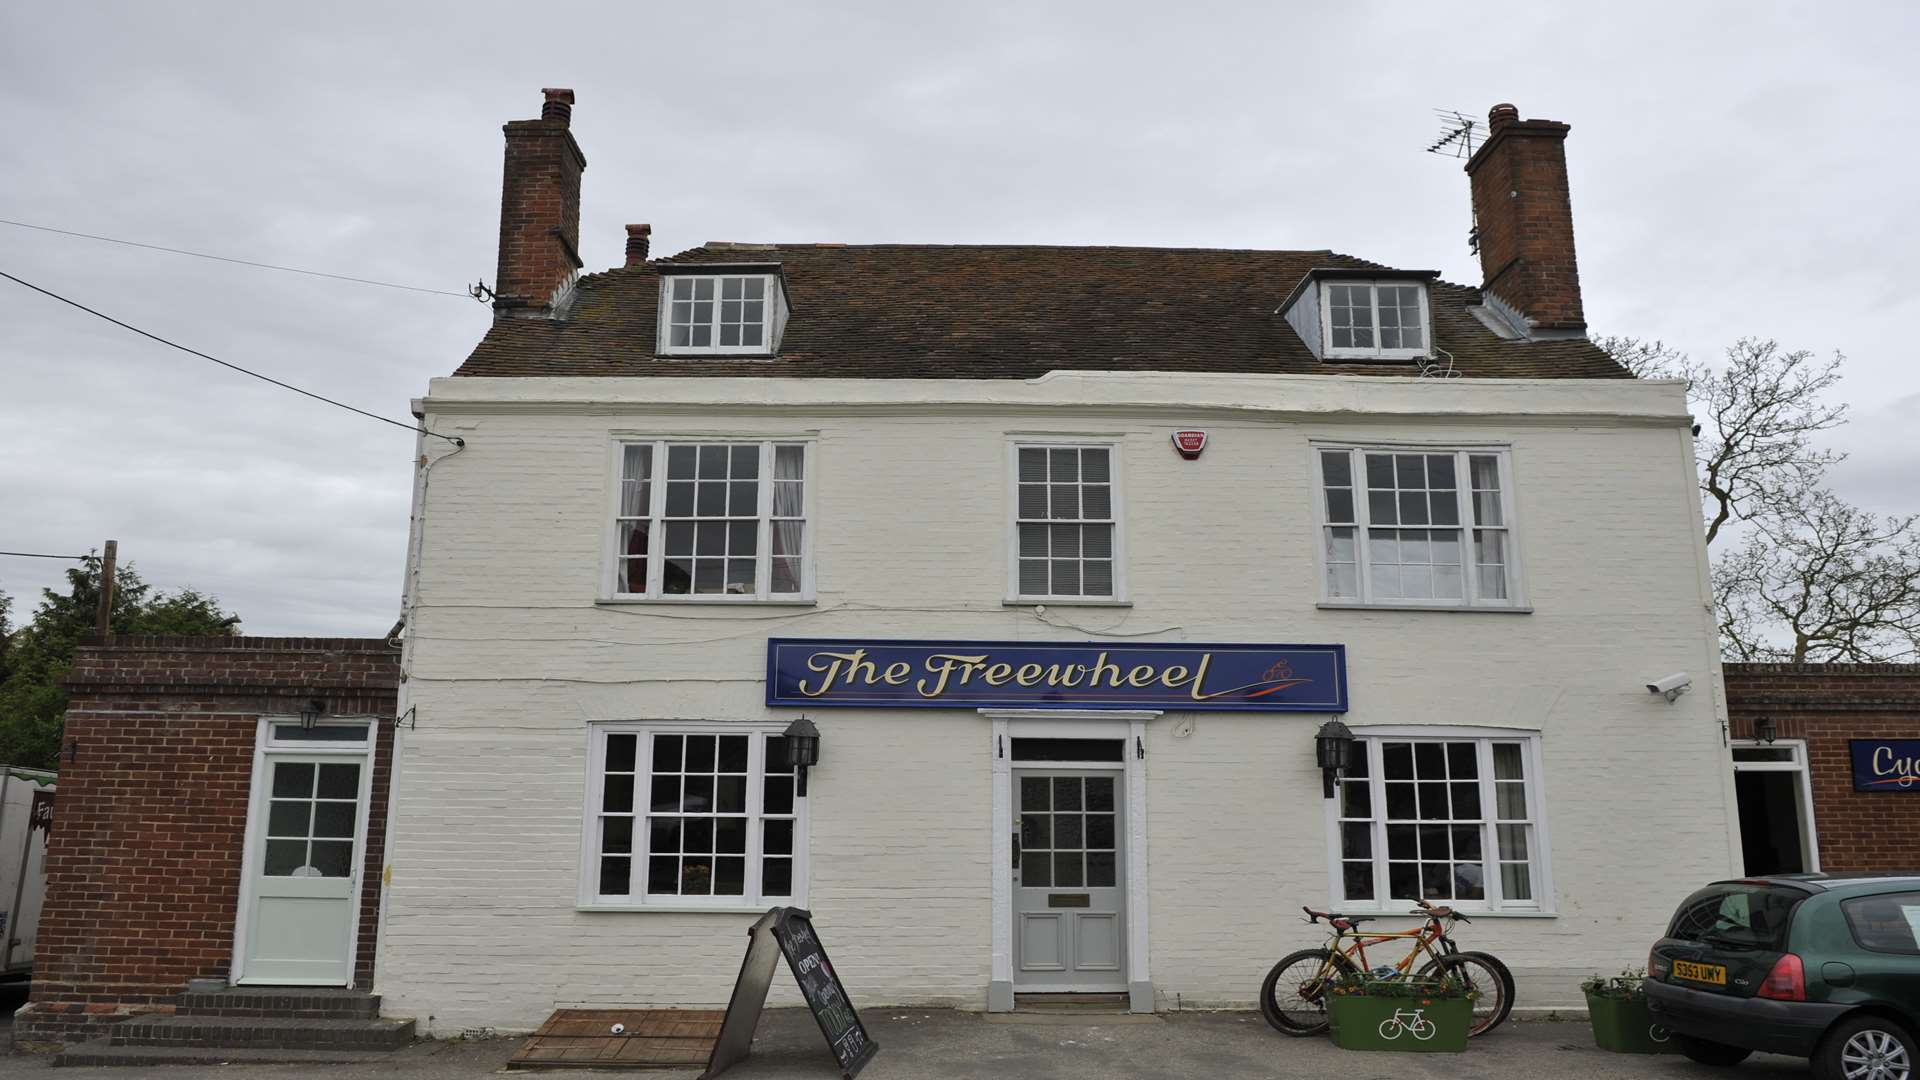 The Freewheel in Graveney near Faversham